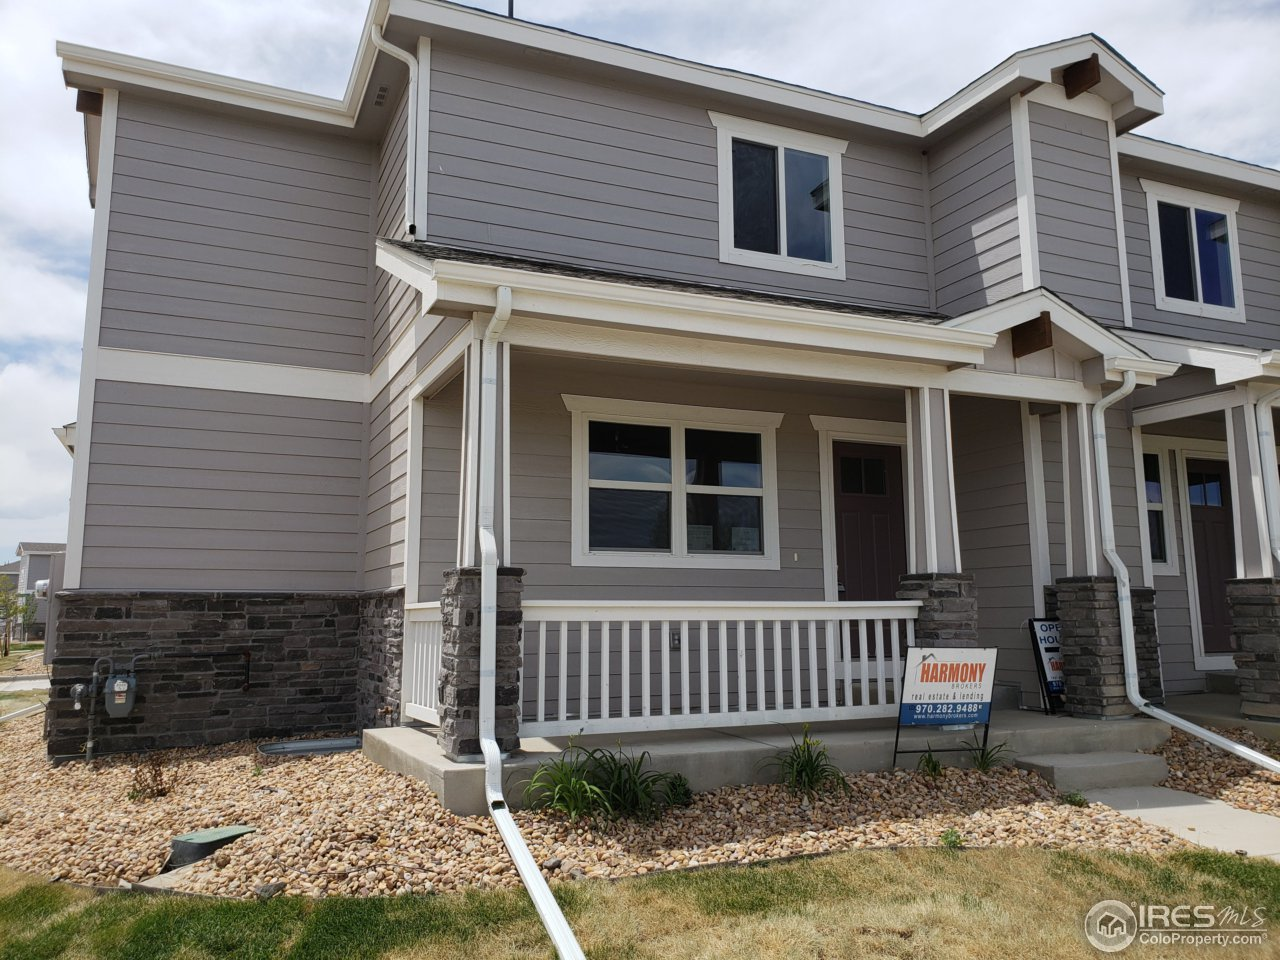 Glasco Park Townhomes is a luxury town house development in Wyndham Hill. Low Maintenance living at its finest!! Convenient to Boulder,Denver,and DIA. Granite countertops, tile/wood flooring, 2 stall garage, unfinished basements ready for expansion, and much more! Many floor plans to choose from including main floor masters. Over $15,000 in upgrades already included. Look for Harmony Brokers Signs. Model is 6107 Kochia #107 open most days.Check the open house link for exact times.